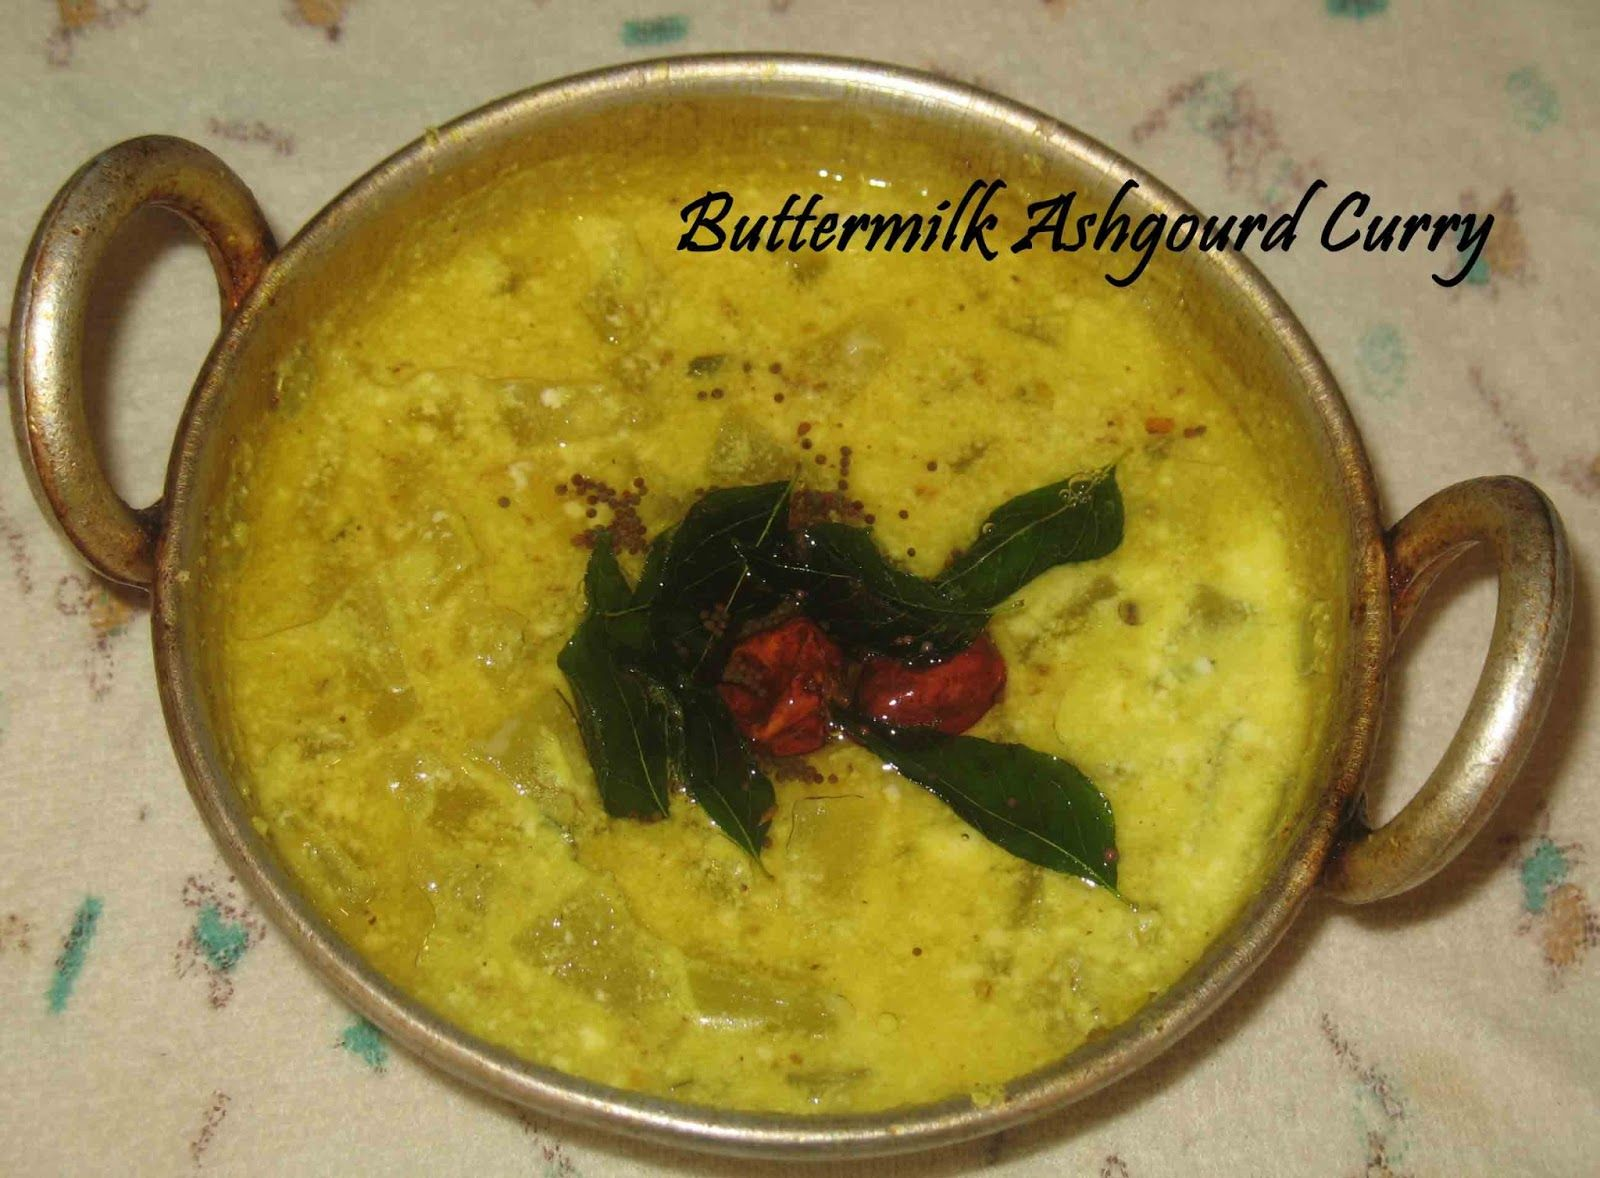 Buttermilk ash gourd curry sujithaeasycooking indian